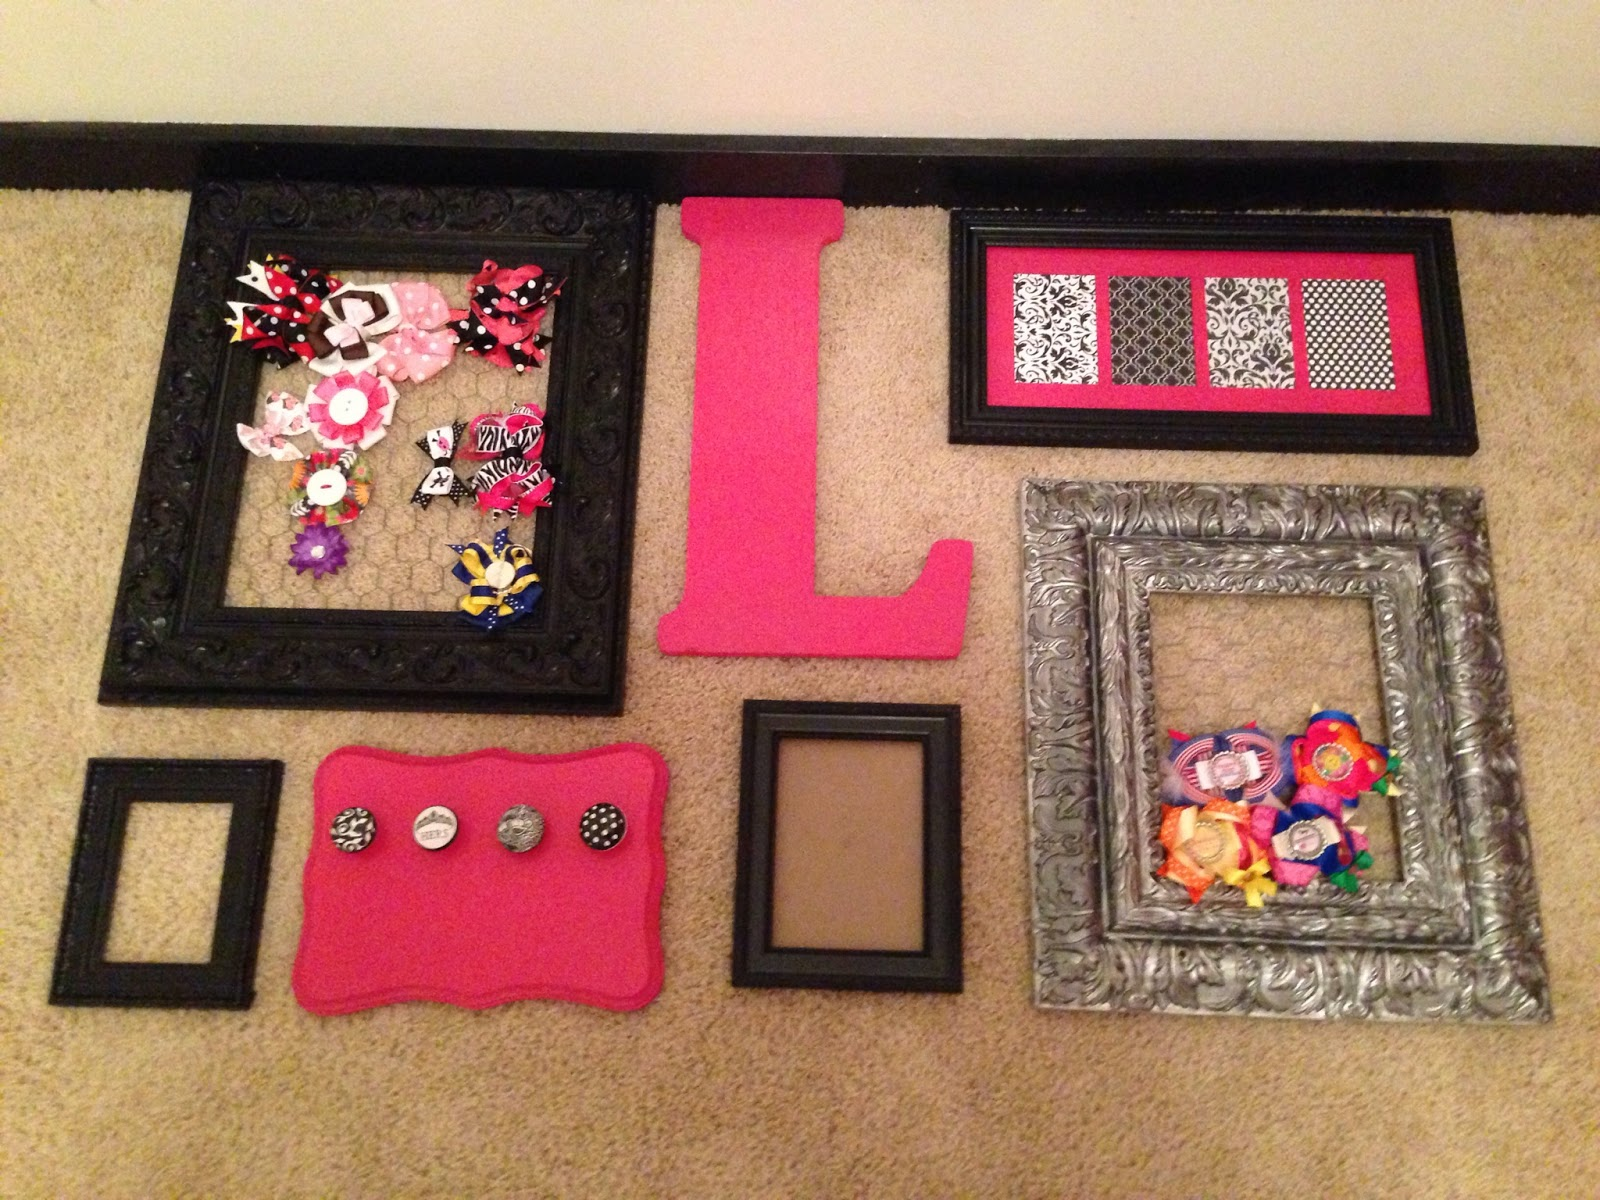 so i started by playing around with the frames i wanted on my wall by shifting them around on the ground originally i started with a much larger number of